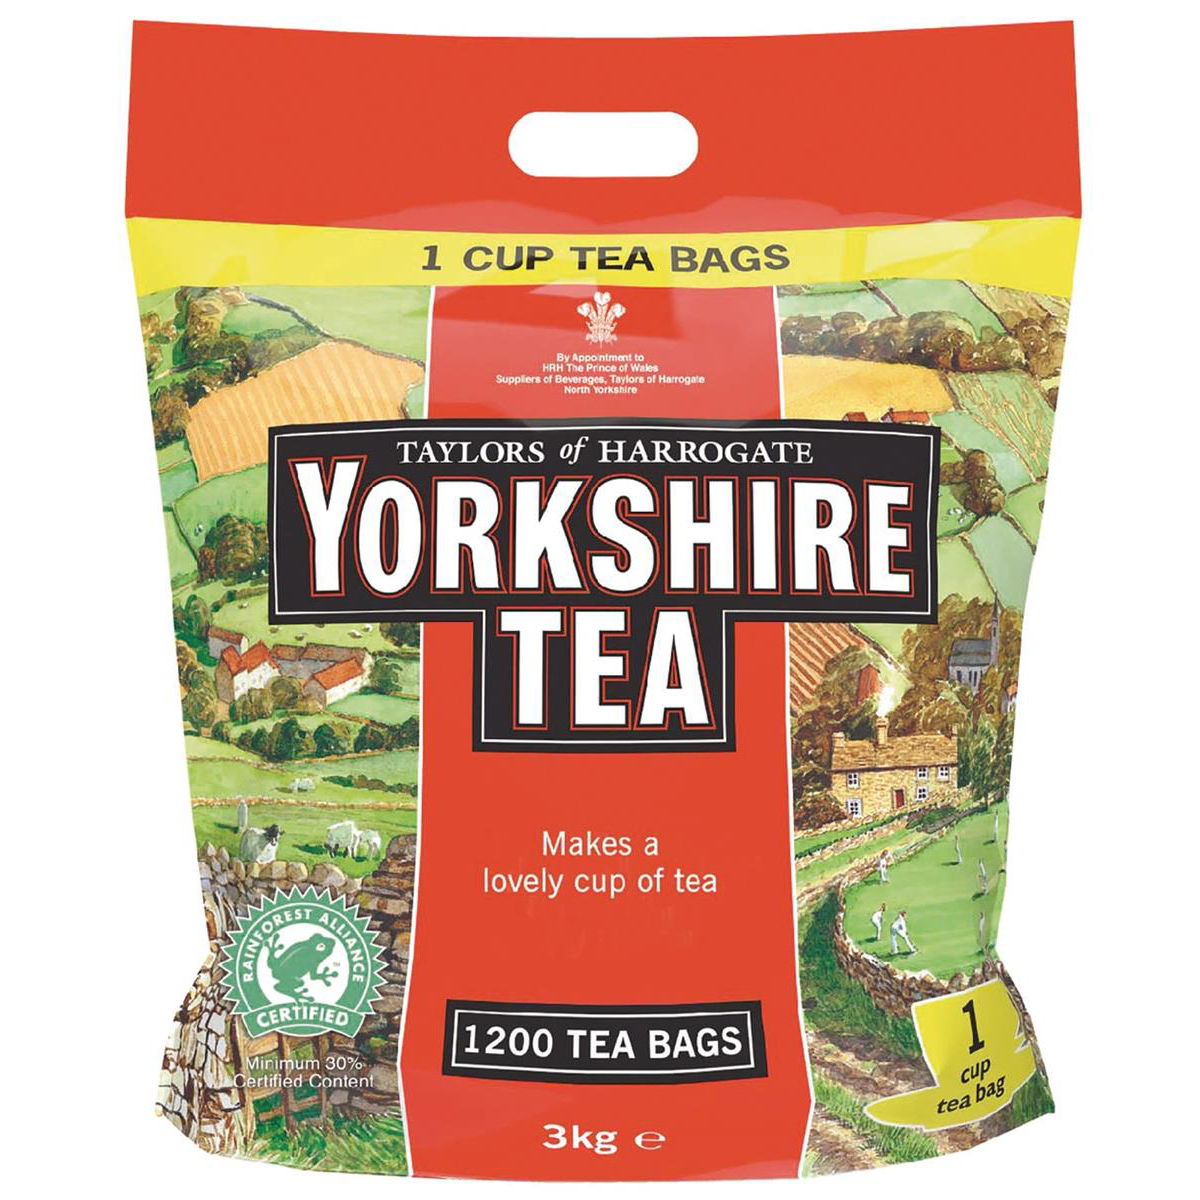 Yorkshire Tea Bags Ref 0403170 Pack 1200